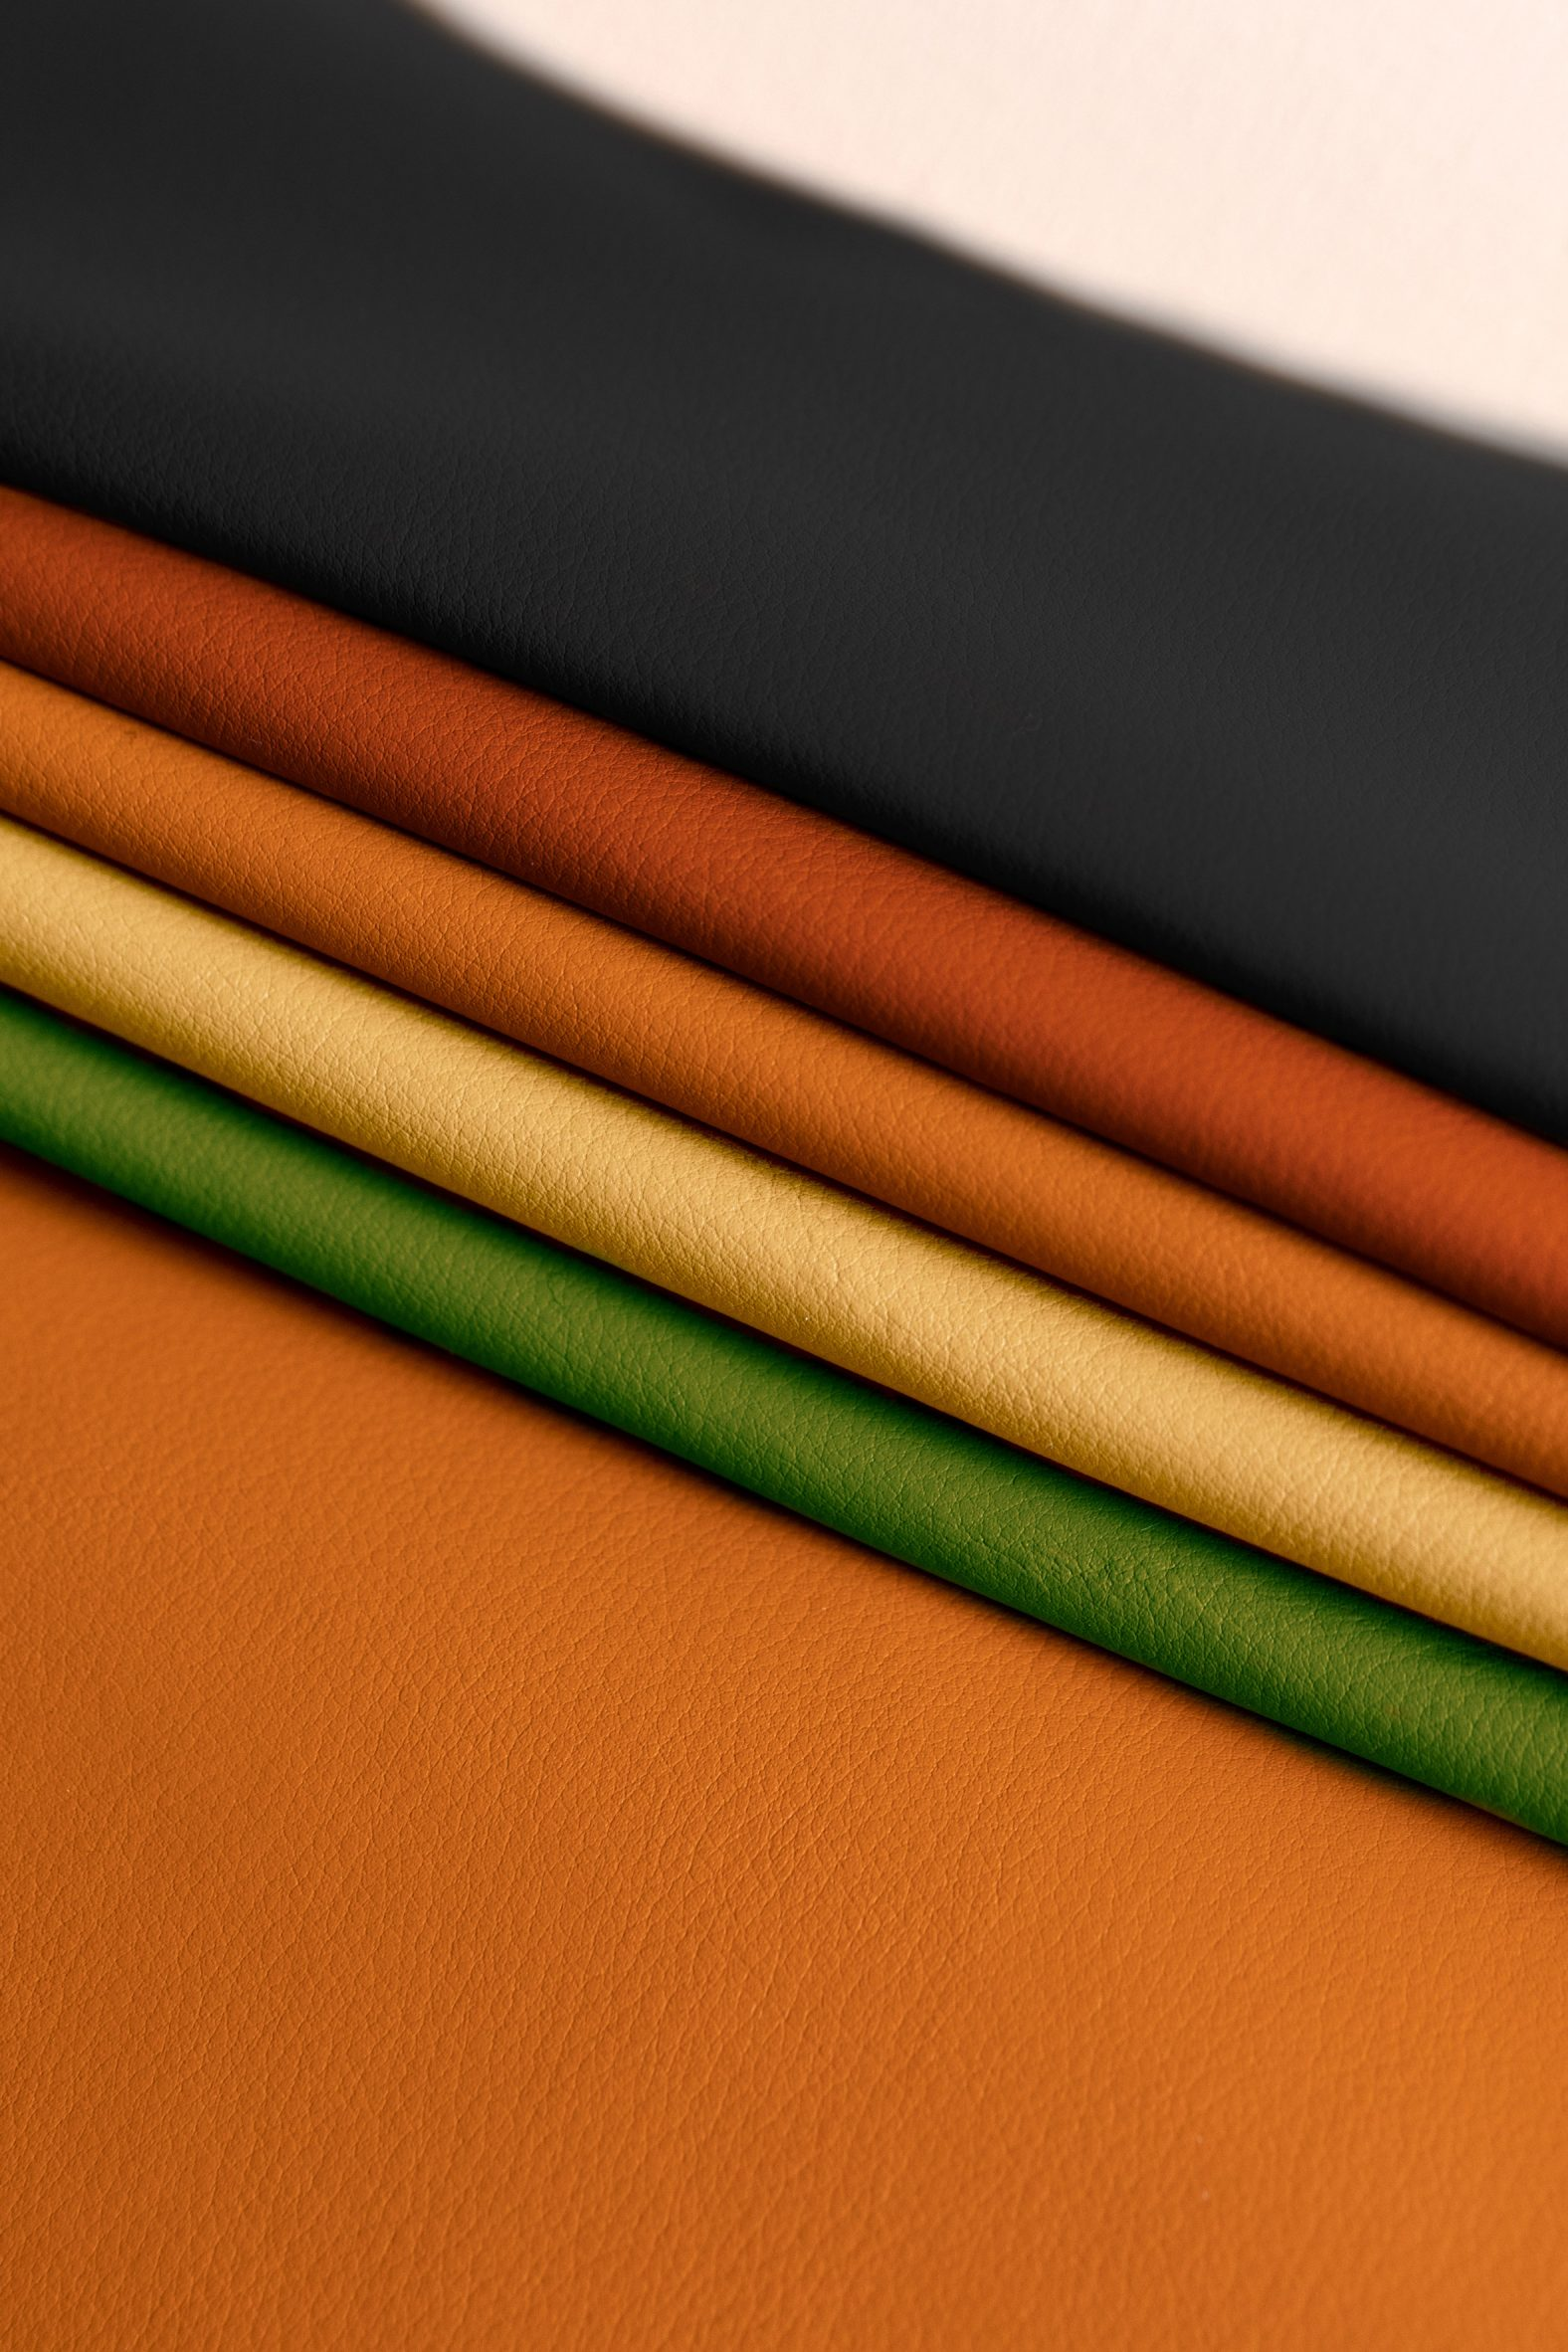 Swatches of different coloured Leap leather